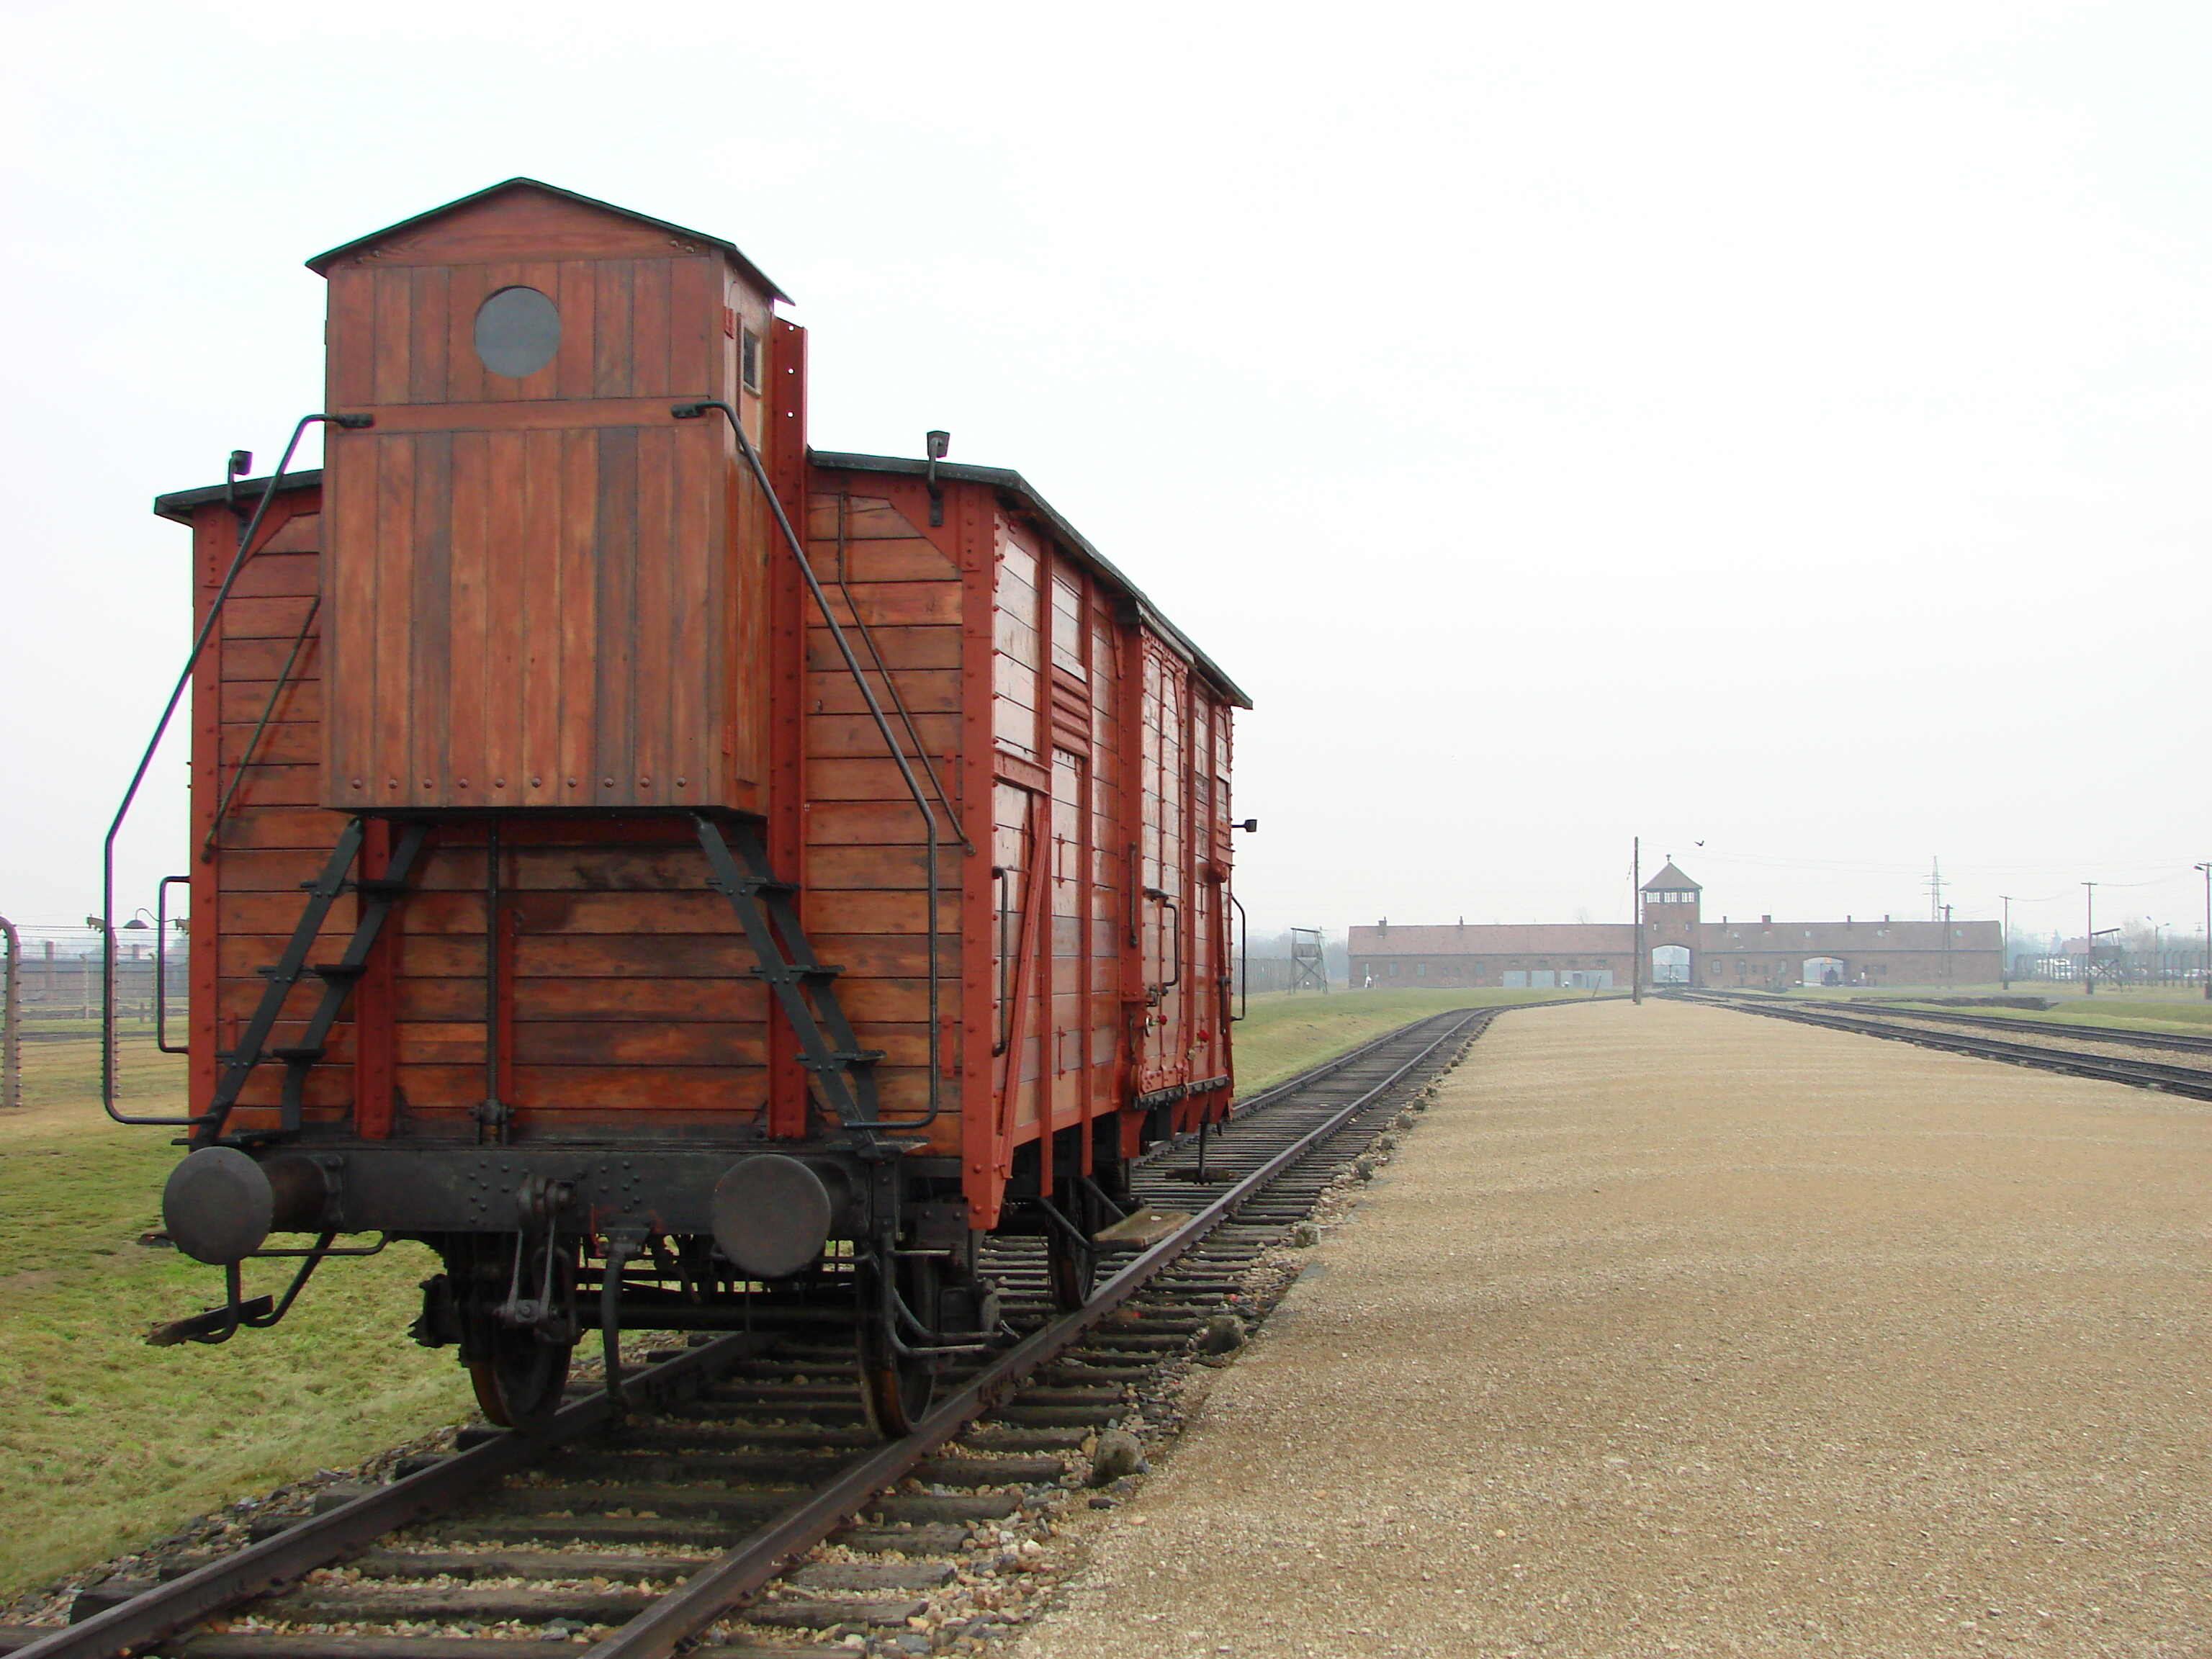 Monuments From Nazi Rail Cars - Concentration camp museums in usa